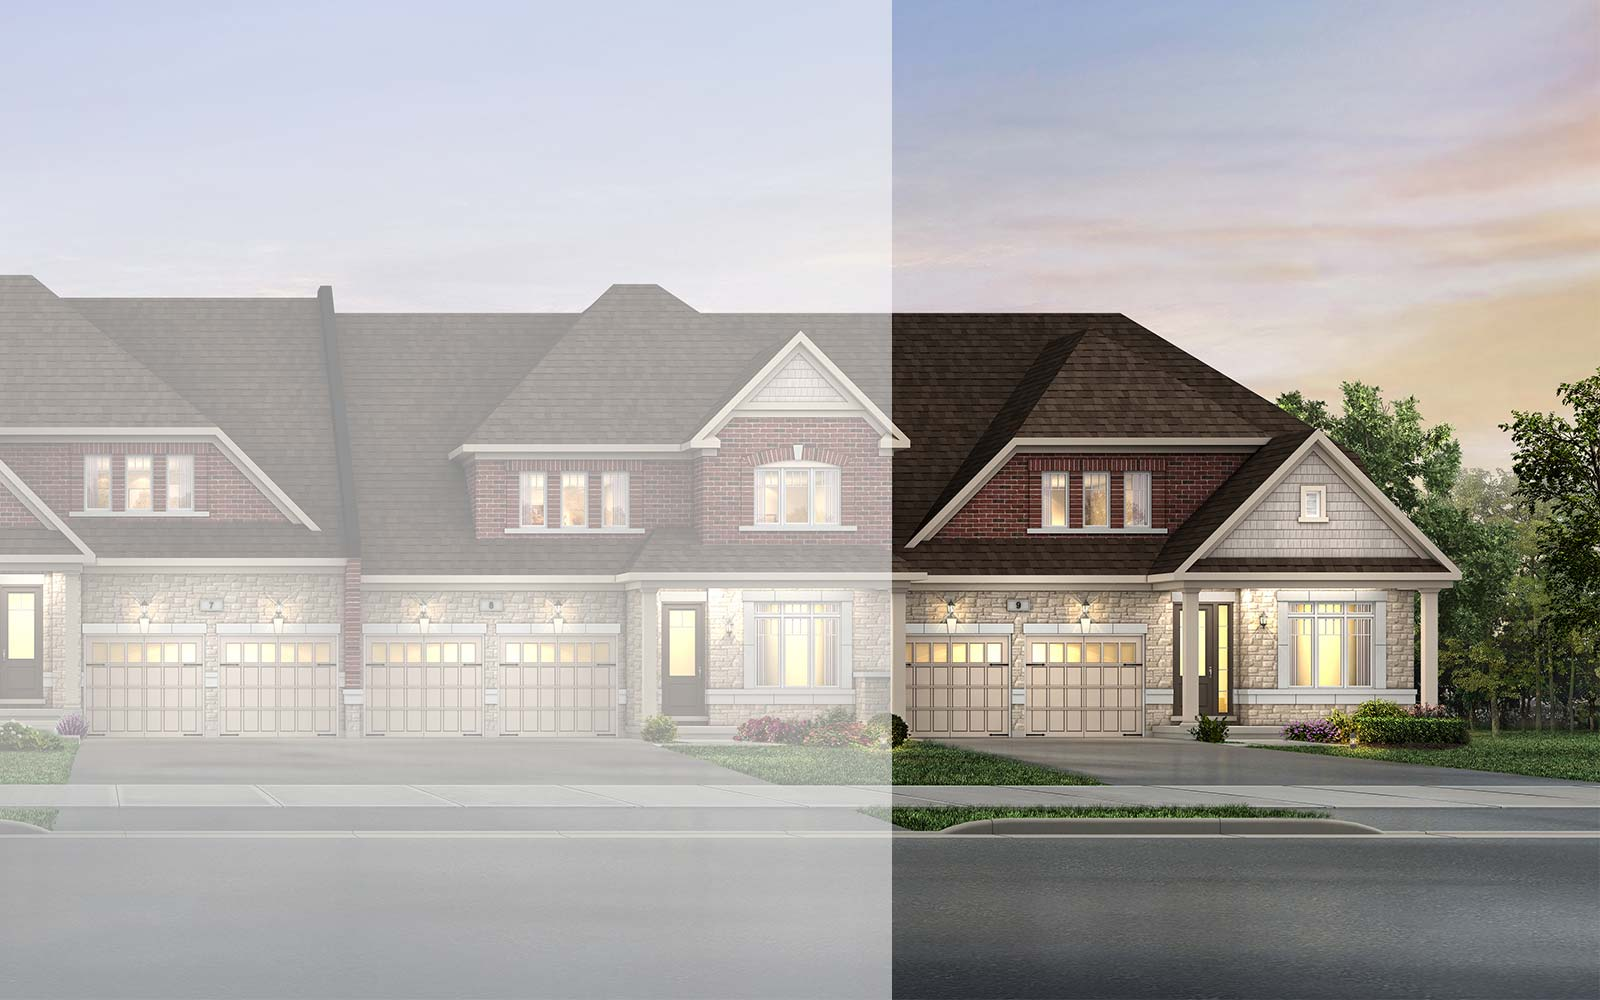 Exterior Bruce Style A End Bruce at Pathways in Caledon East Caledon ON Brookfield Residential